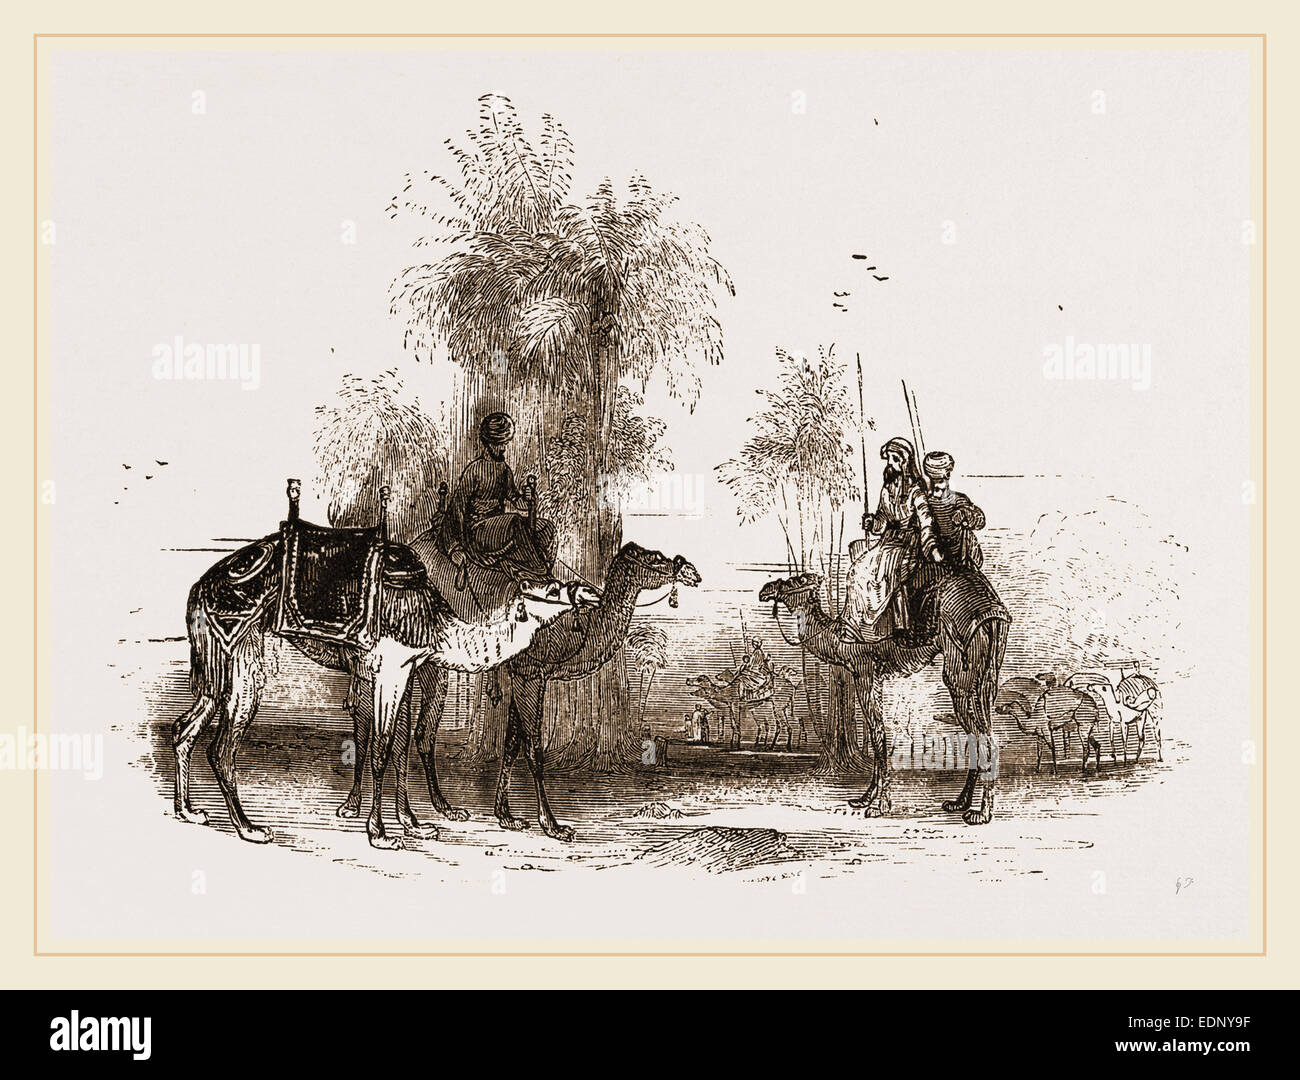 Mounted Camels - Stock Image